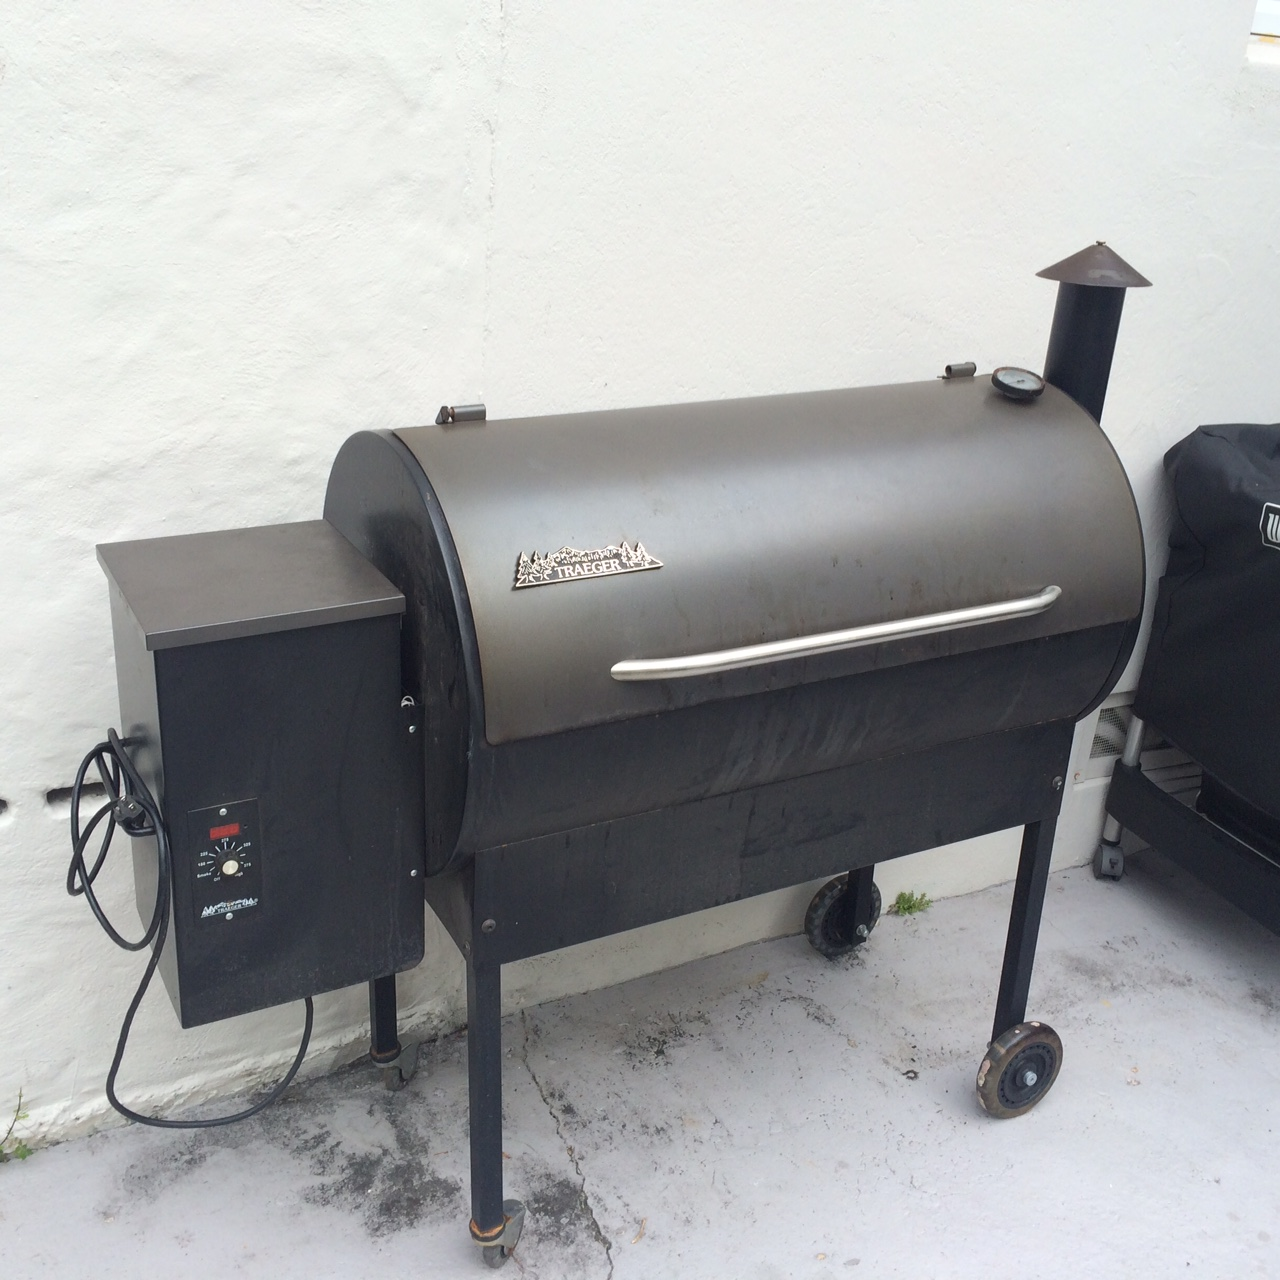 here is a pic of my dadu0027s traeger pellet smoker - Traeger Grill Reviews